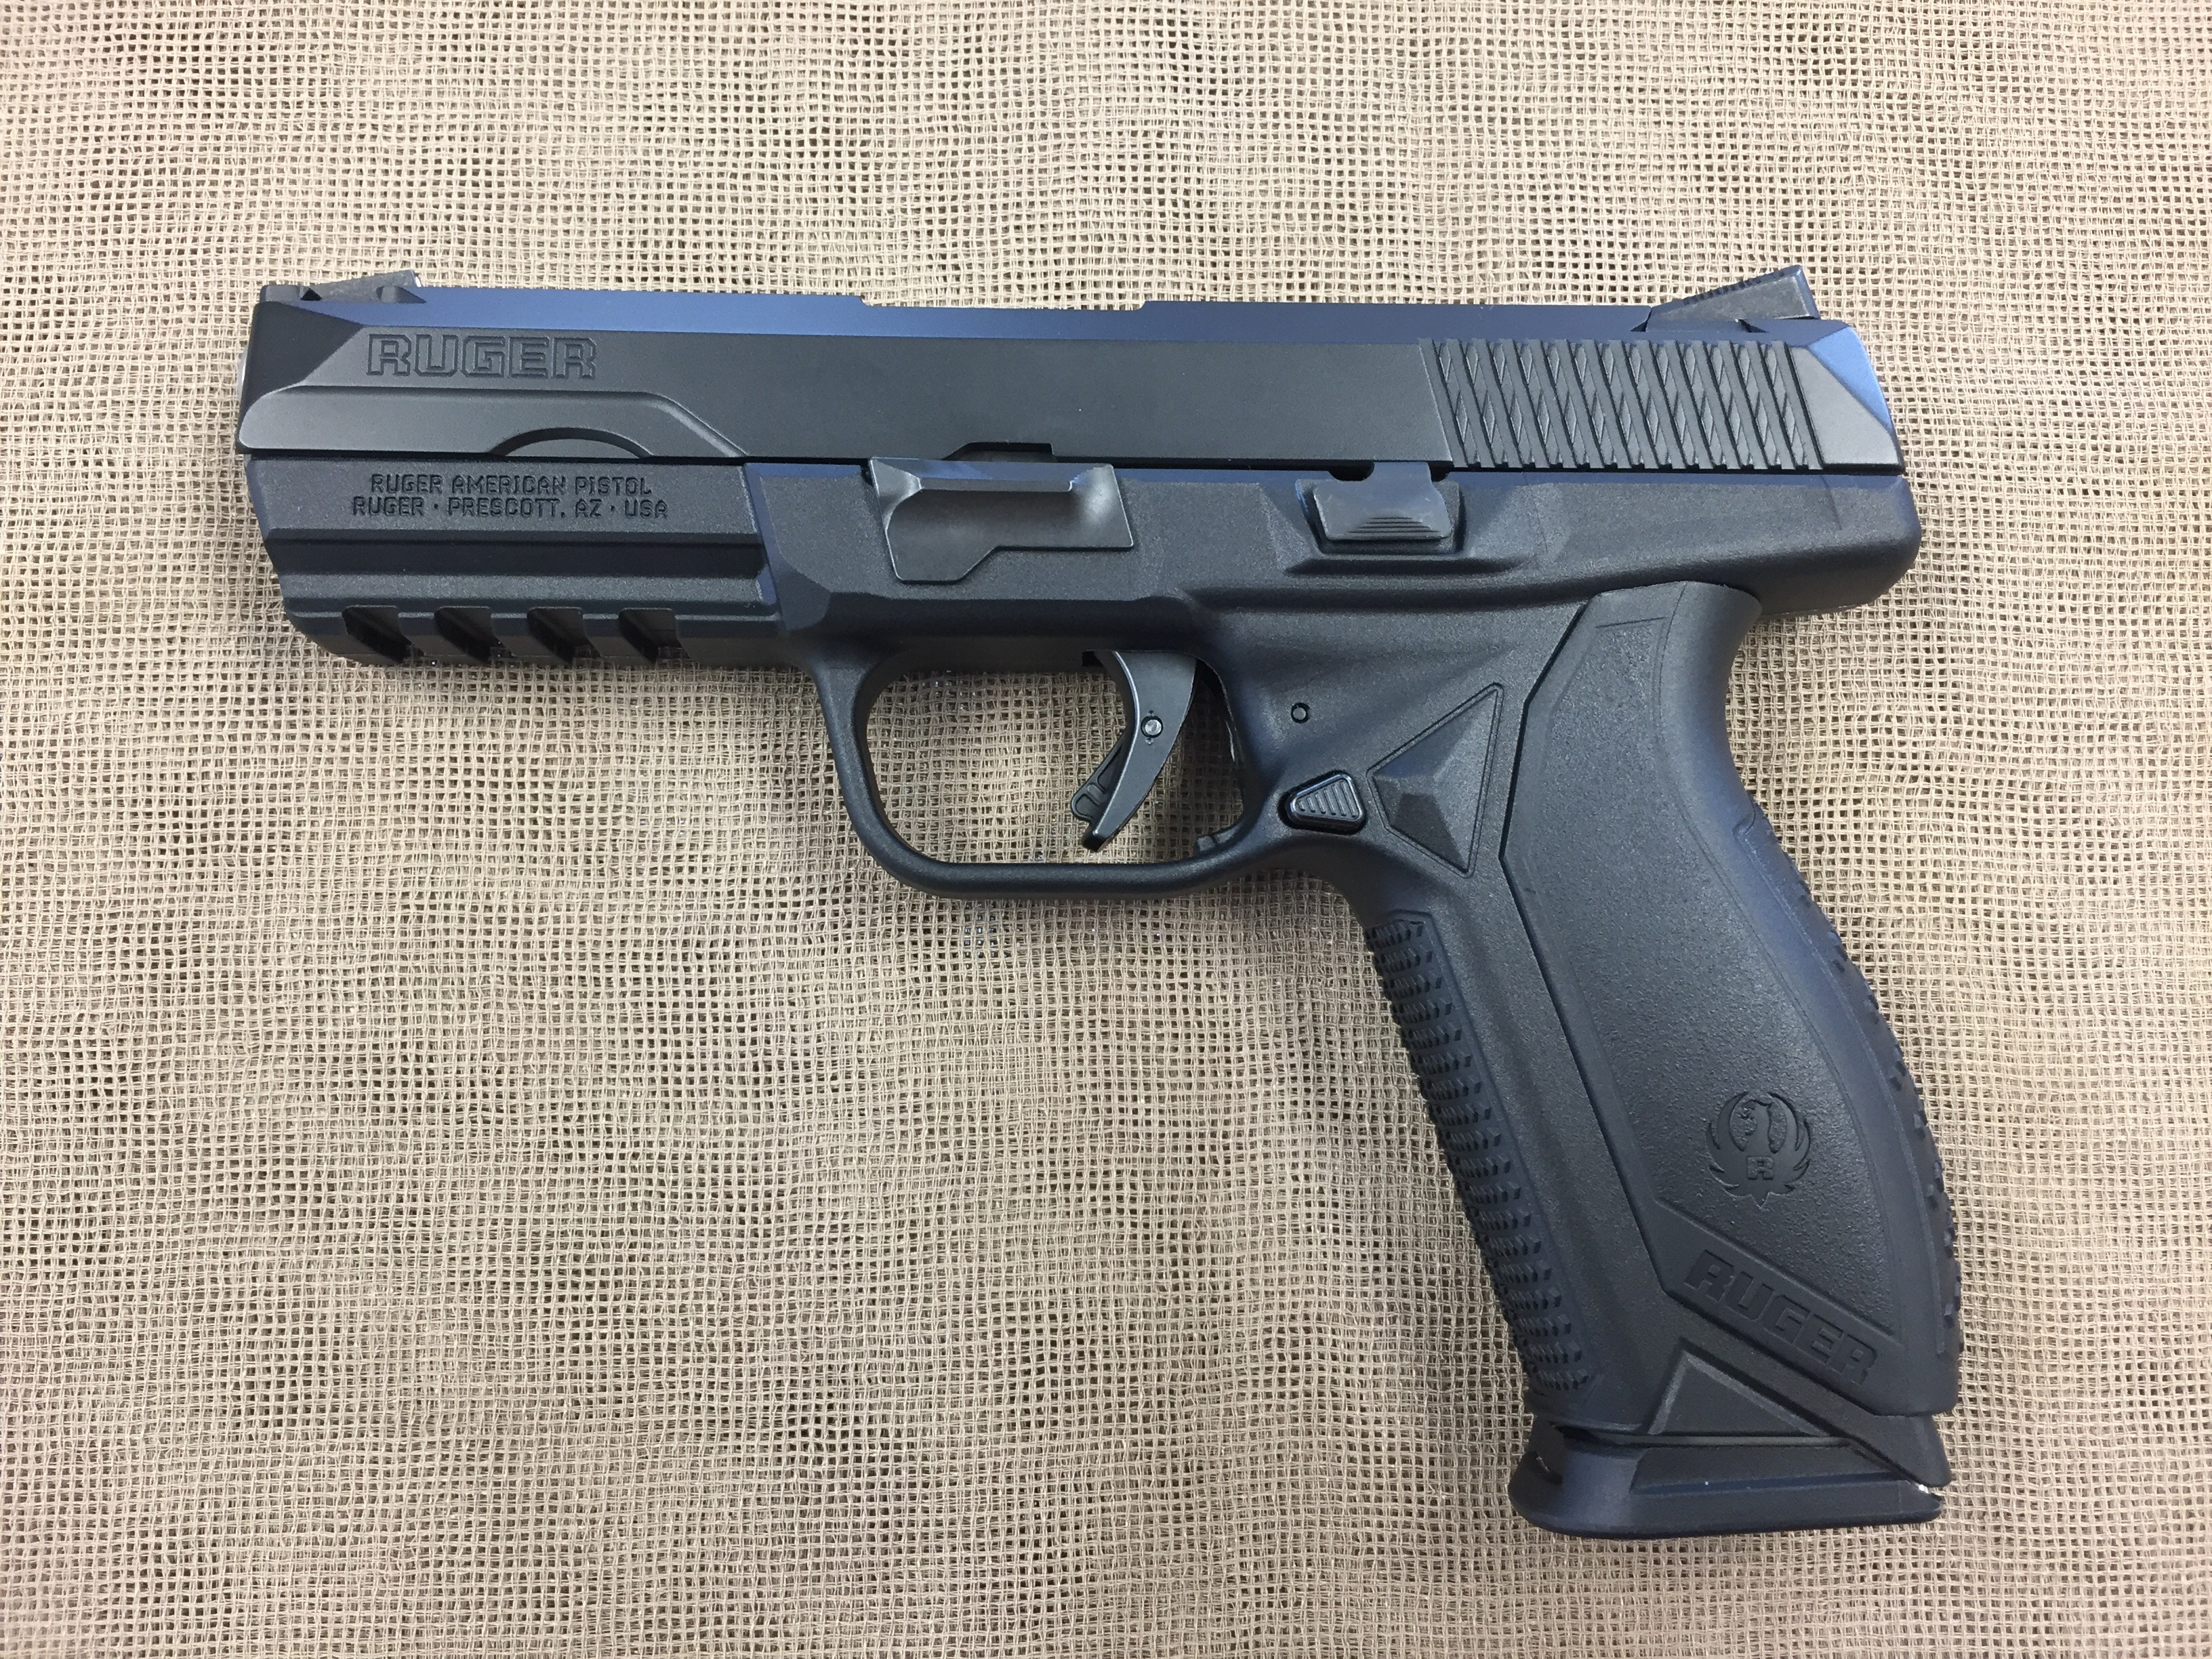 ruger american pistol 9mm auto saddle rock armory